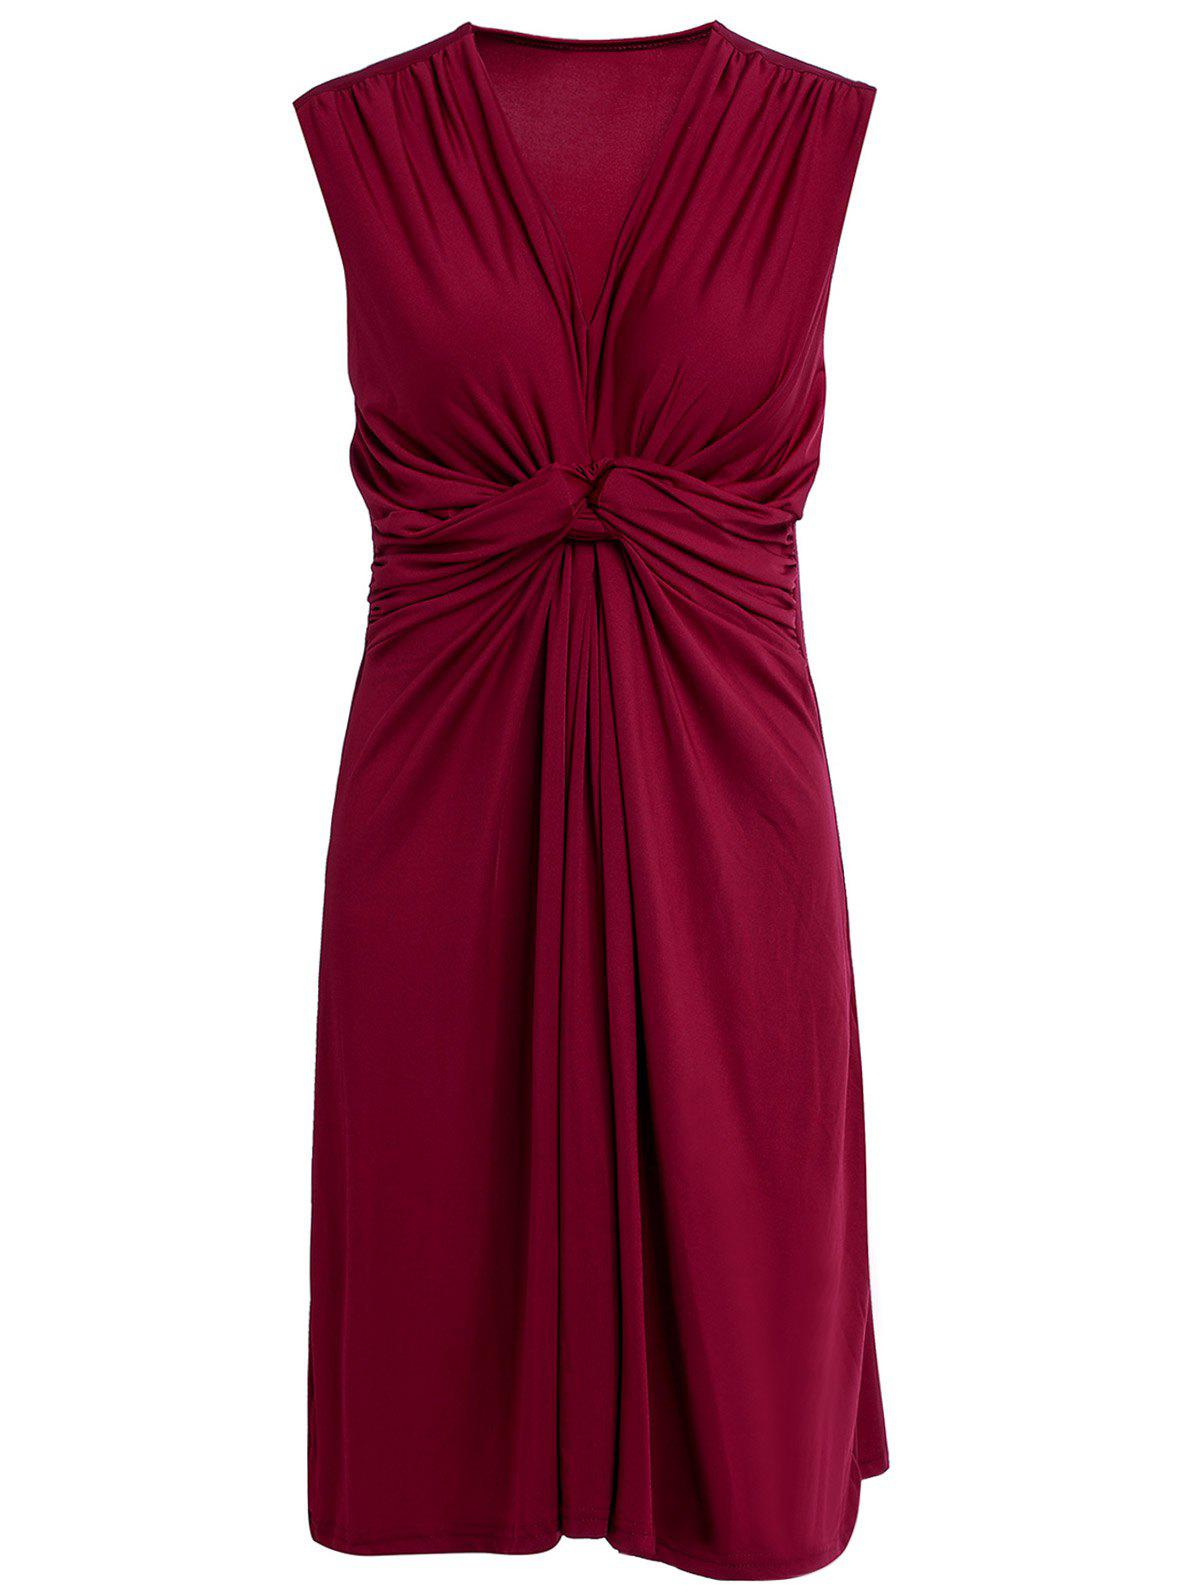 Vogue V-Neck Pleated Pure Color Dress For Women - L WINE RED